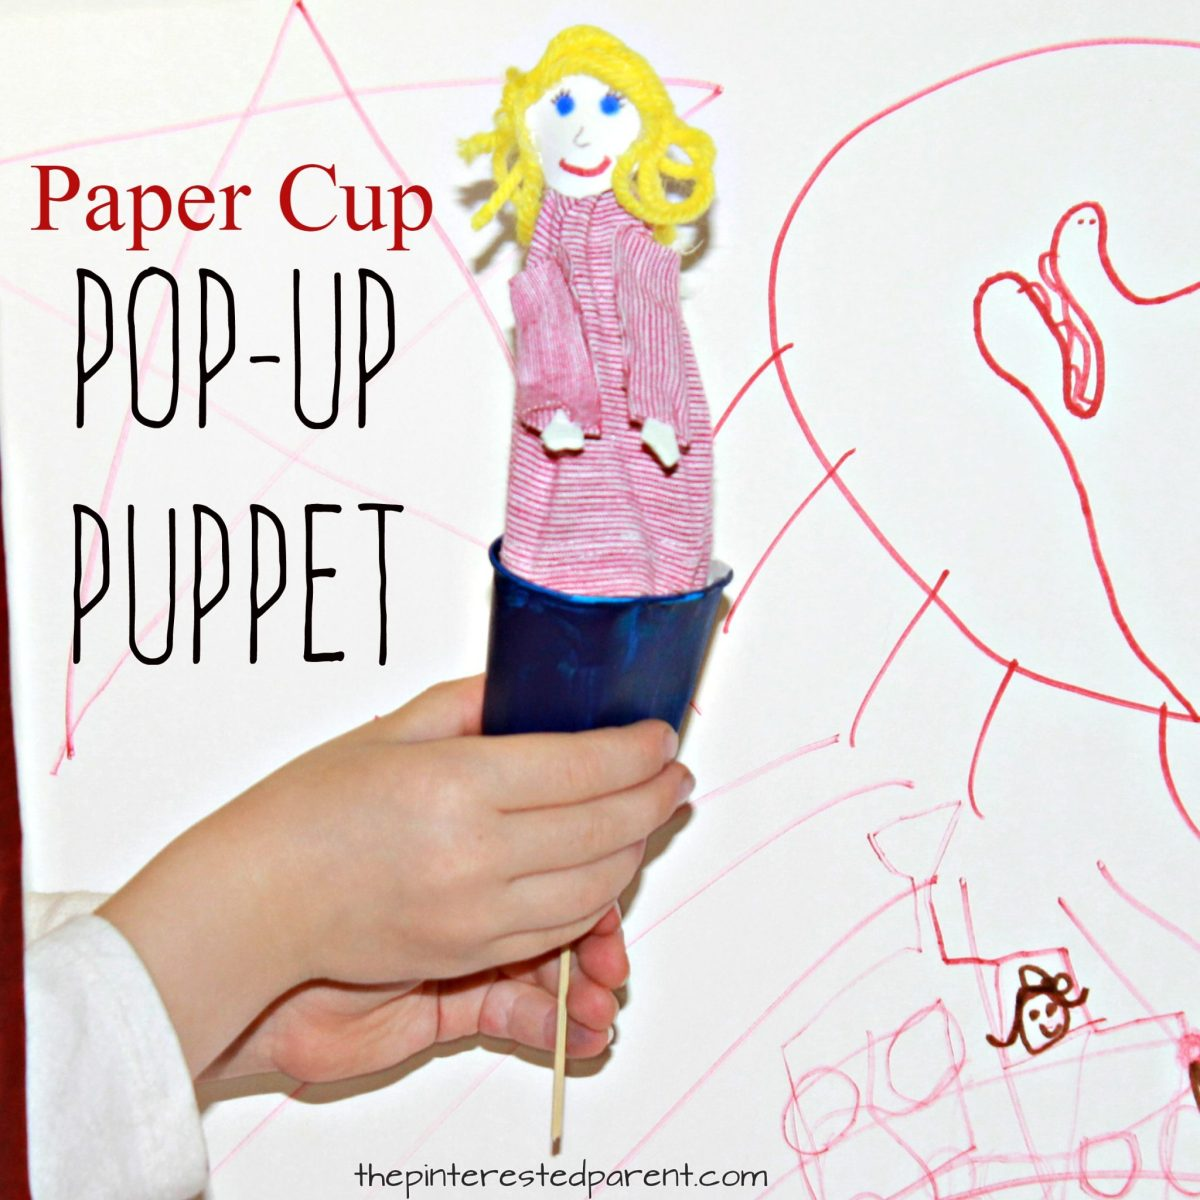 Paper Cup Pop-up Puppet